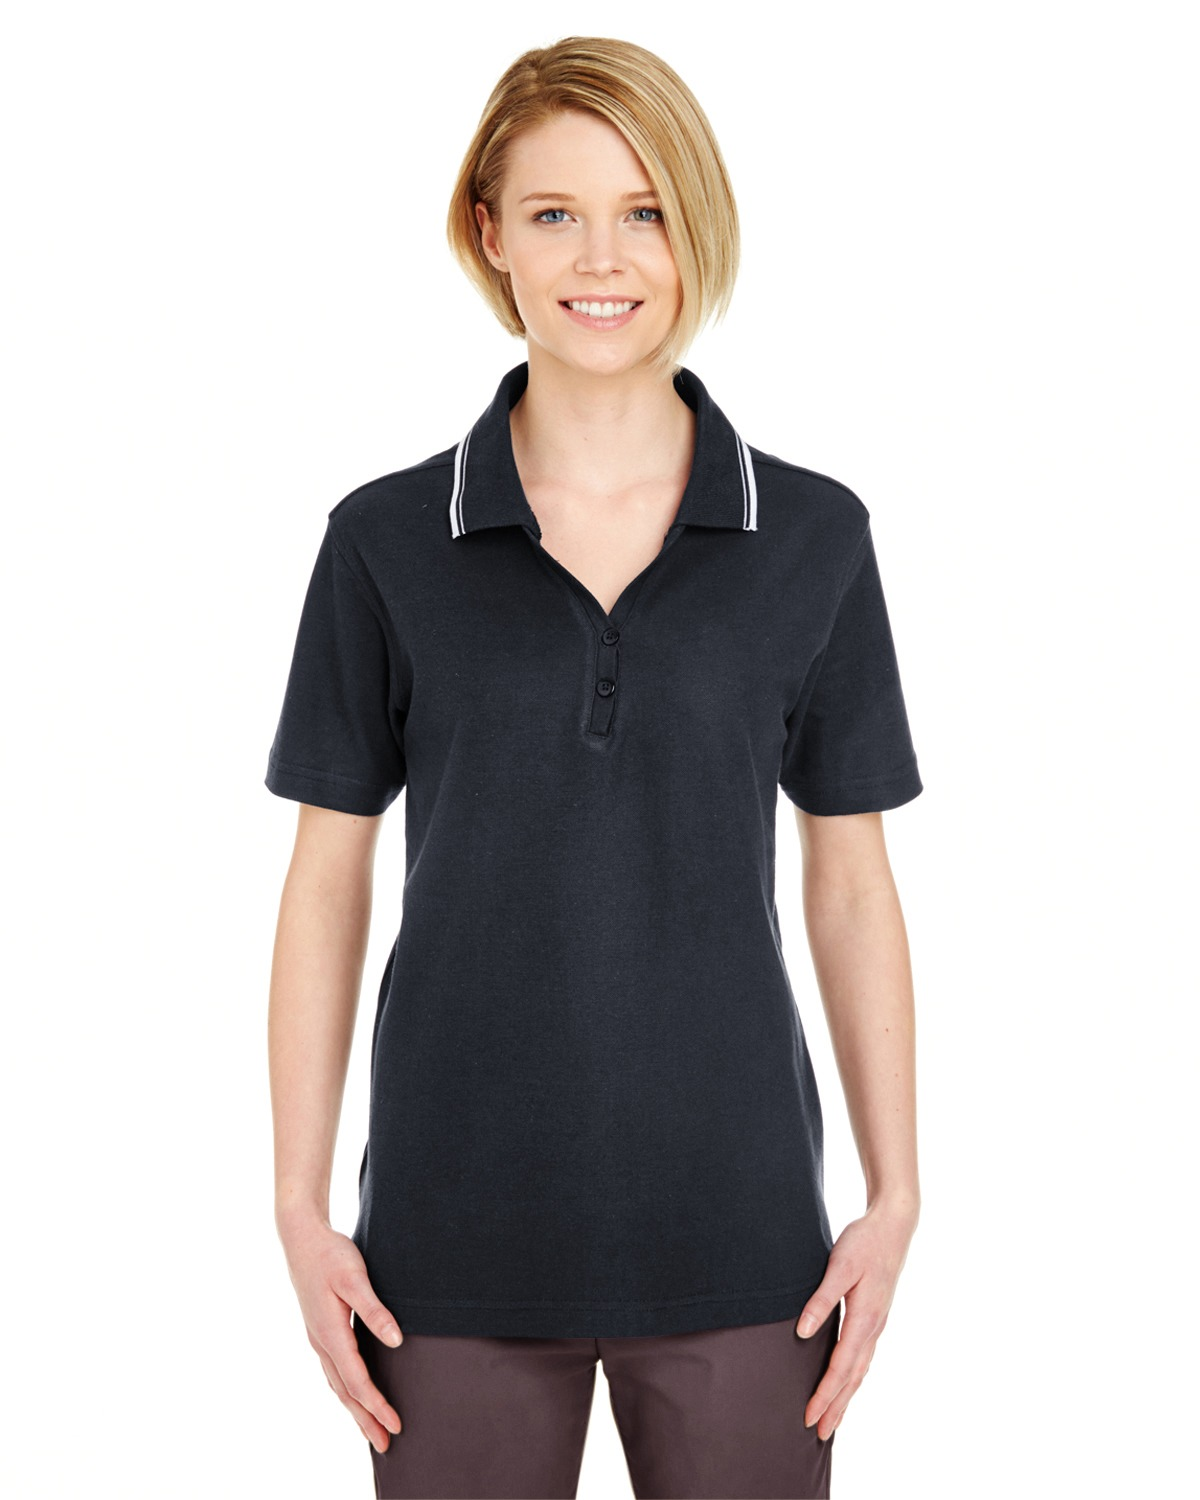 UltraClub 8546 Women short sleeve Whisper Pique Polo with Tipped Collar at GotApparel